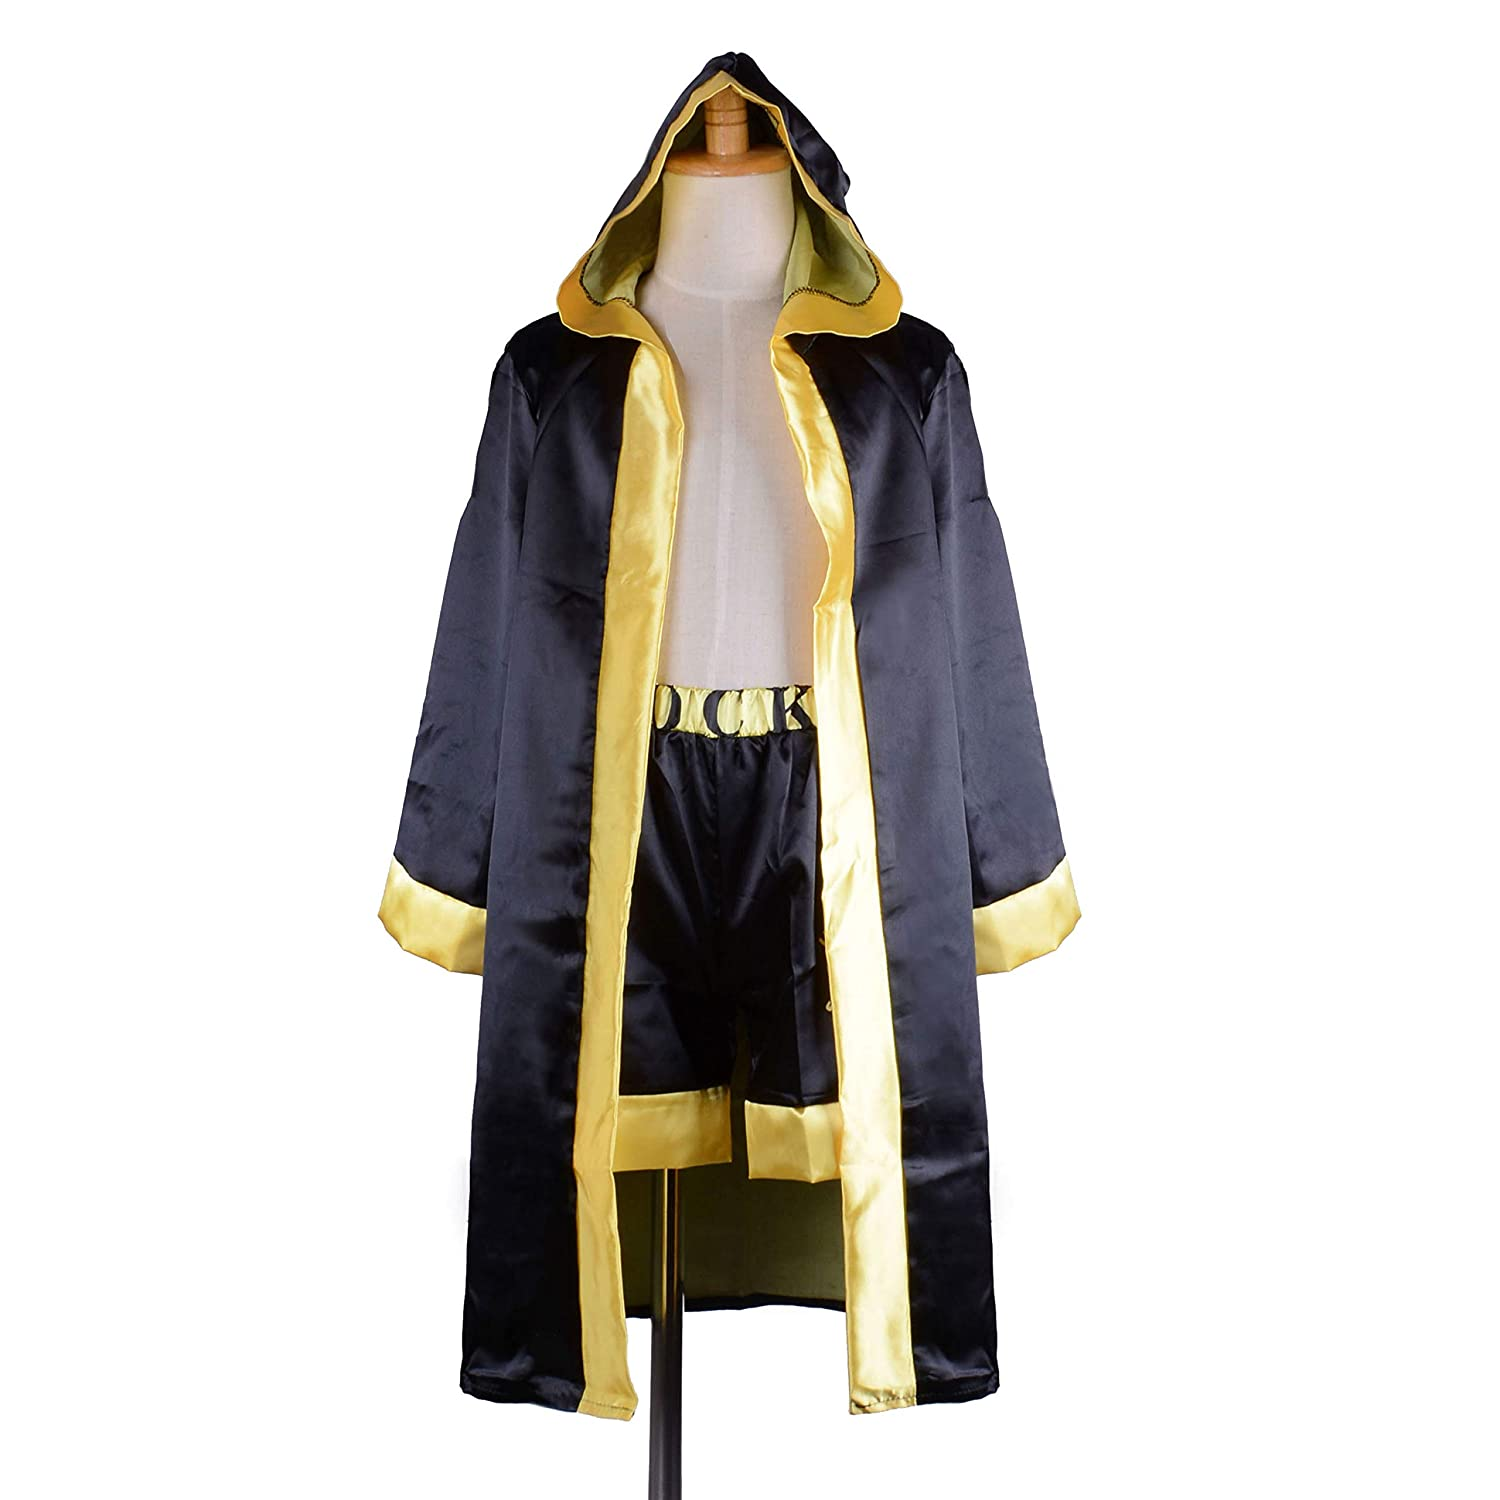 37fe9cf3ff92 Amazon.com  Children Costume Classic Movie Clothes Apollo American Flag  Boxing Robe Hooded Shorts Kids Italian Stallion Suits  Clothing